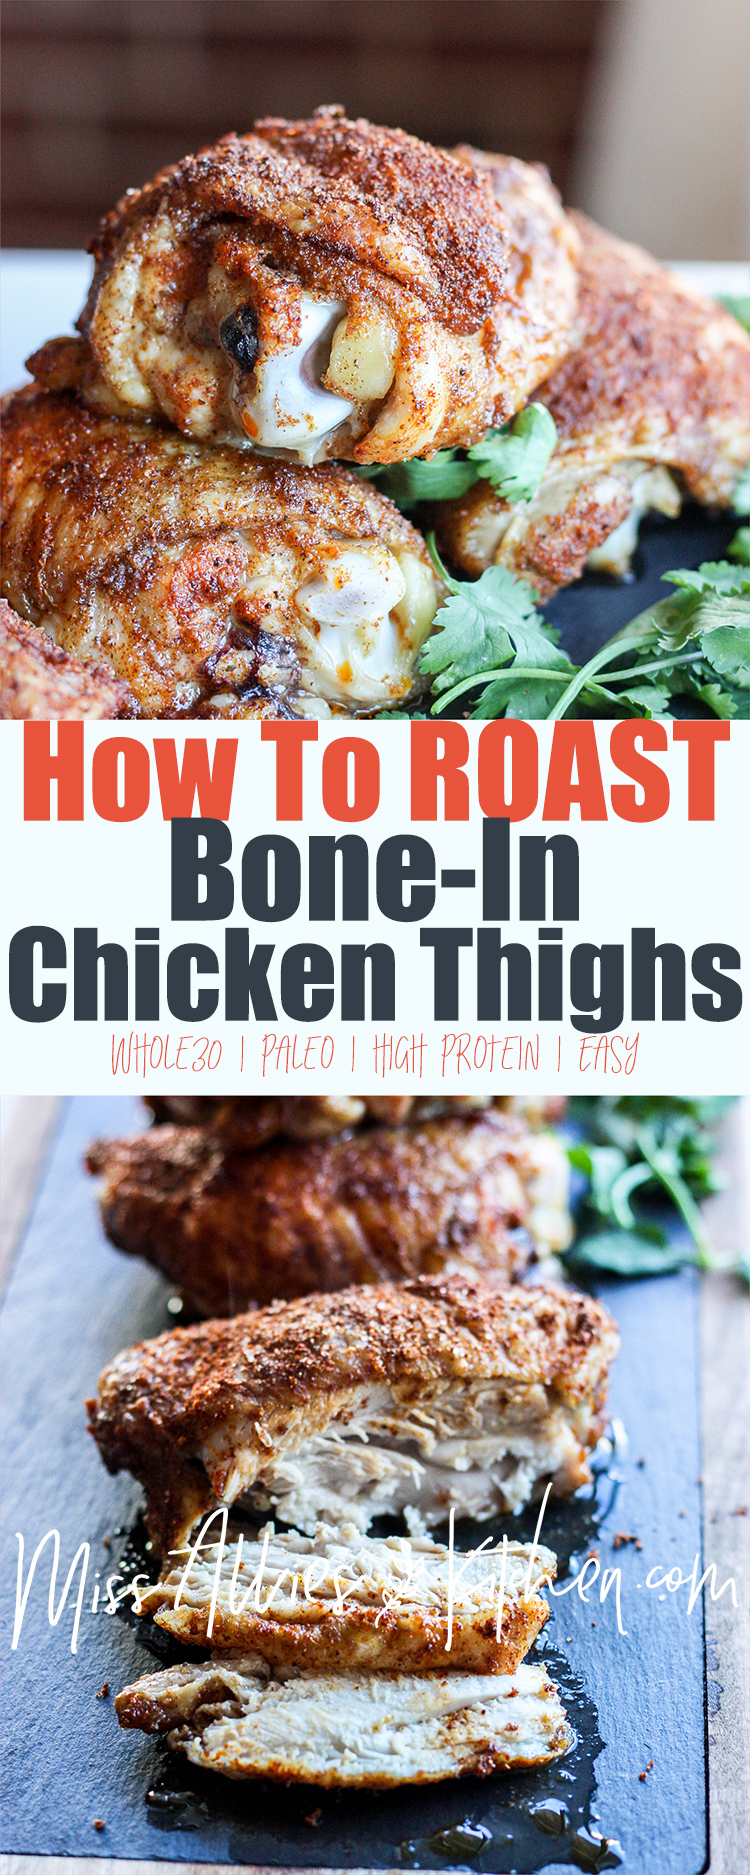 How To Roast Bone-In Chicken Thighs